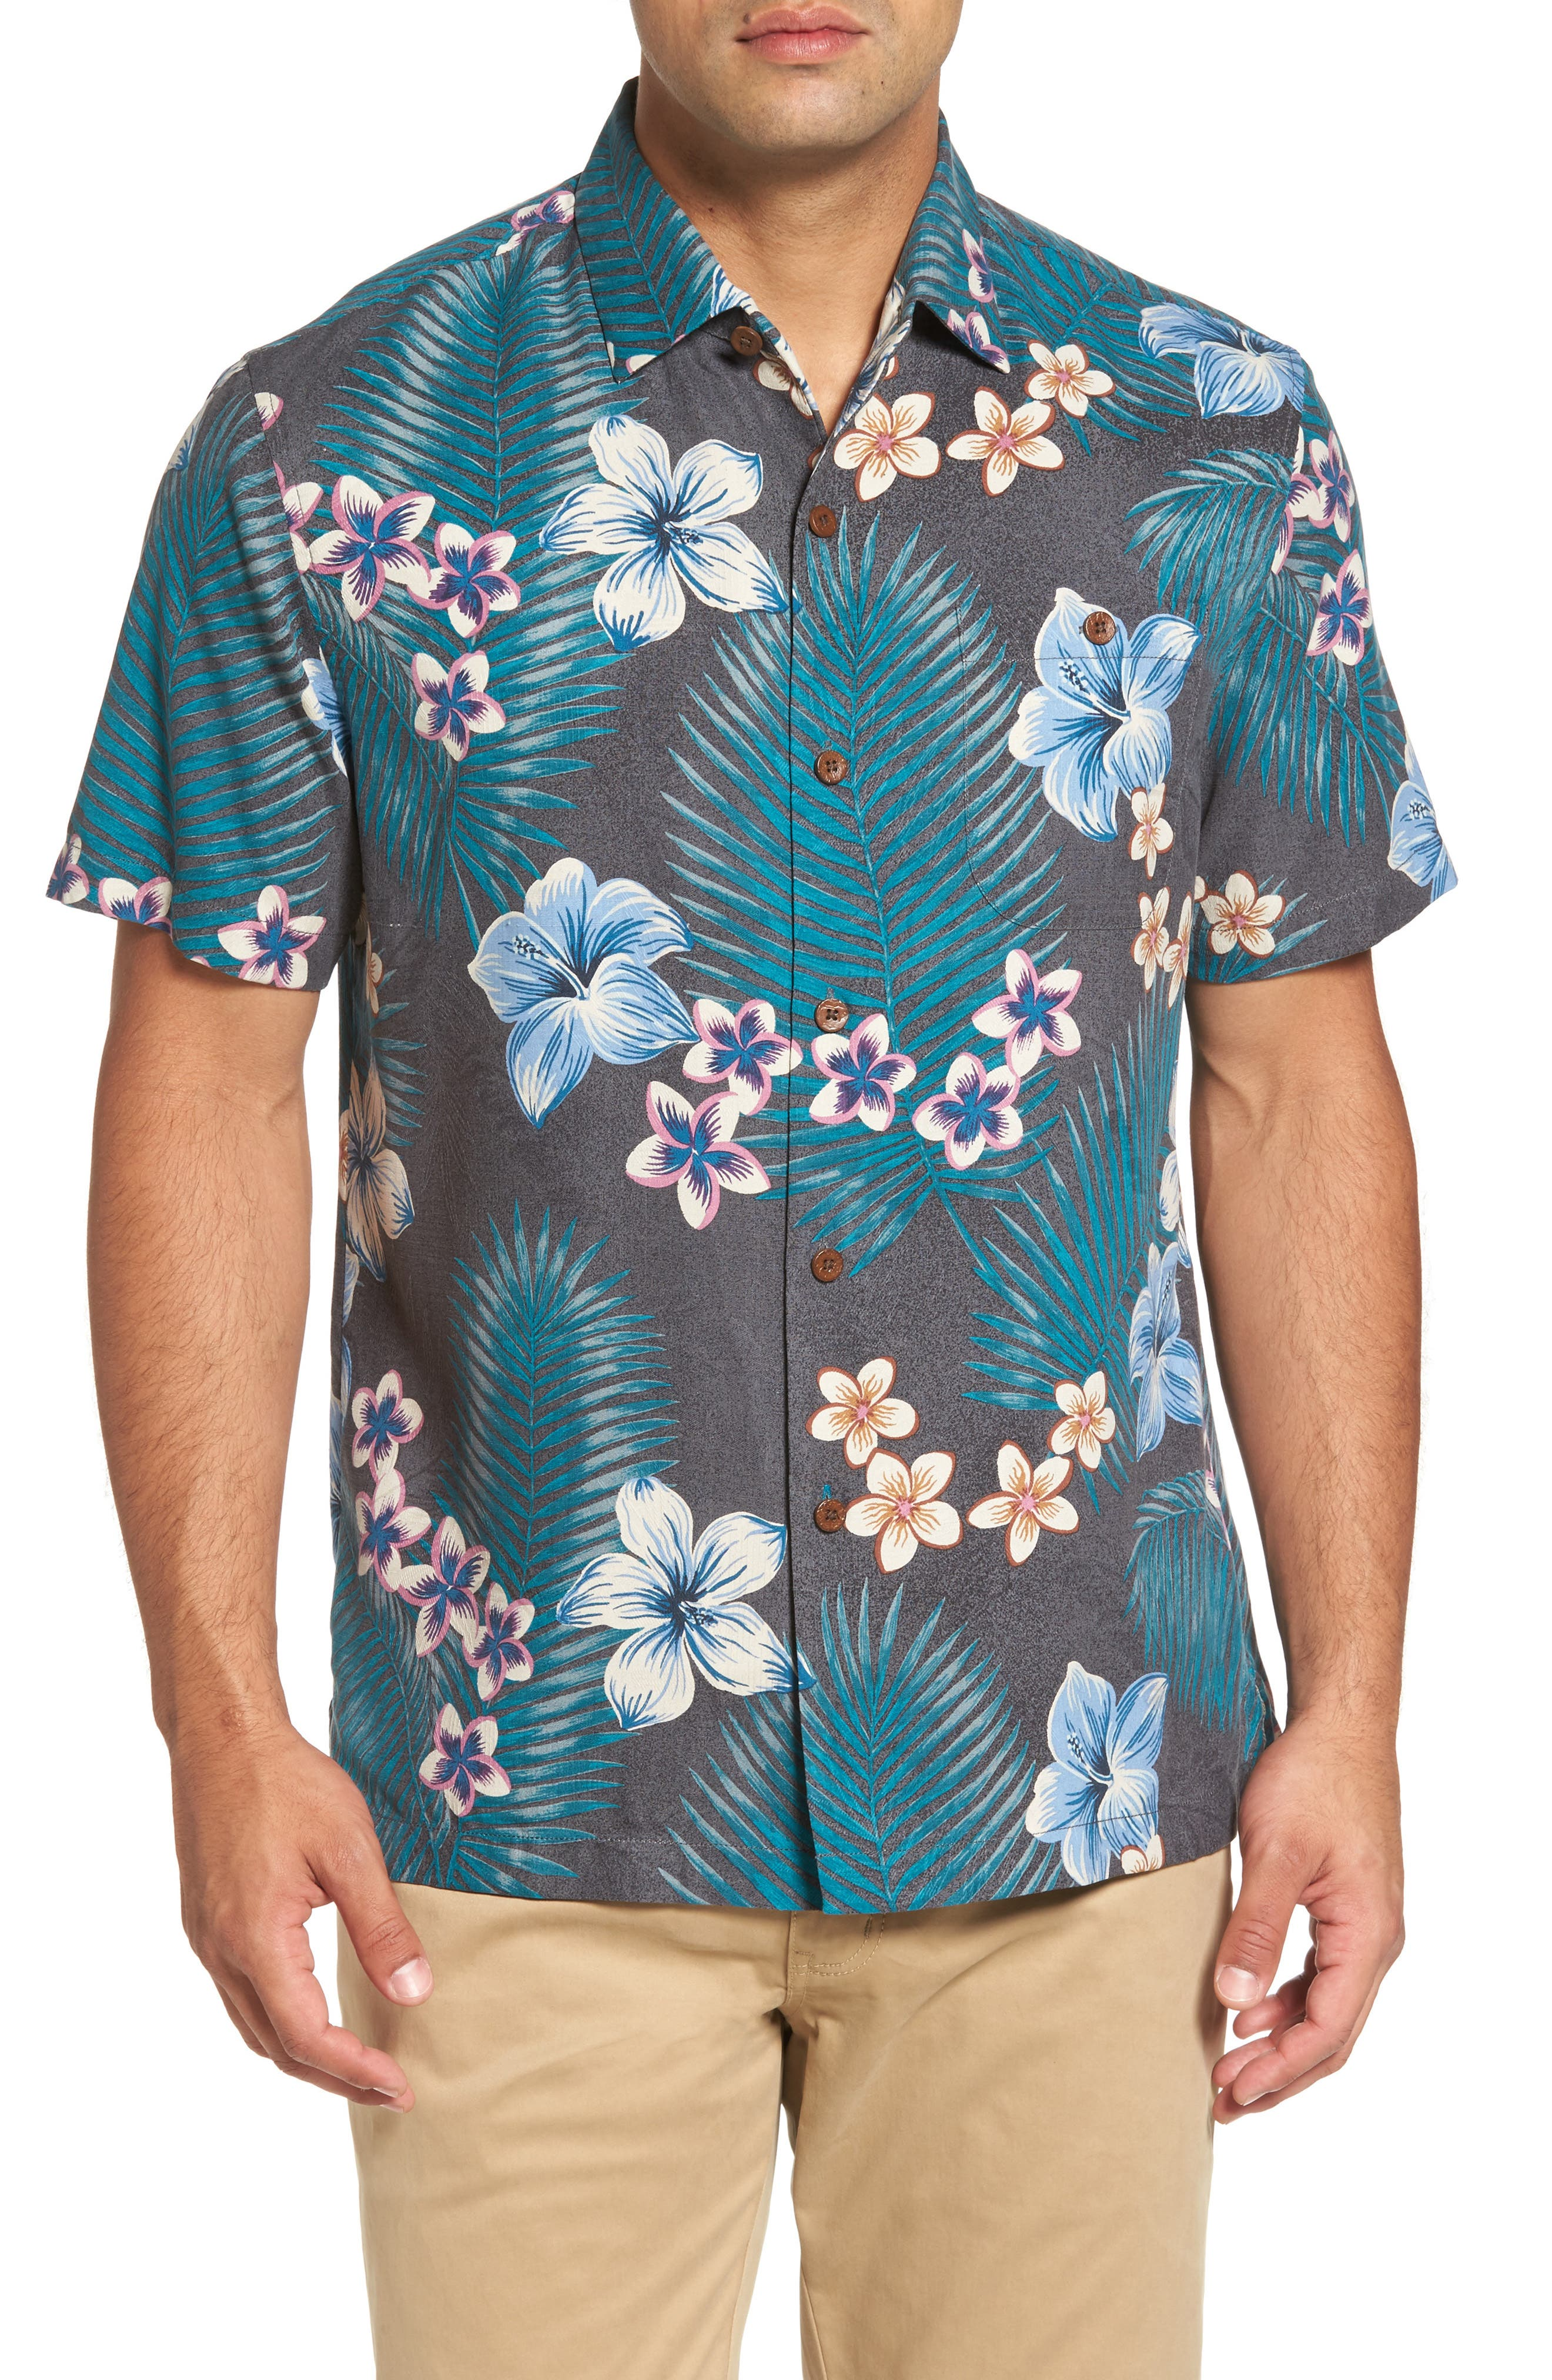 Alternate Image 1 Selected - Tommy Bahama Marjorelle Blooms Silk Woven Shirt